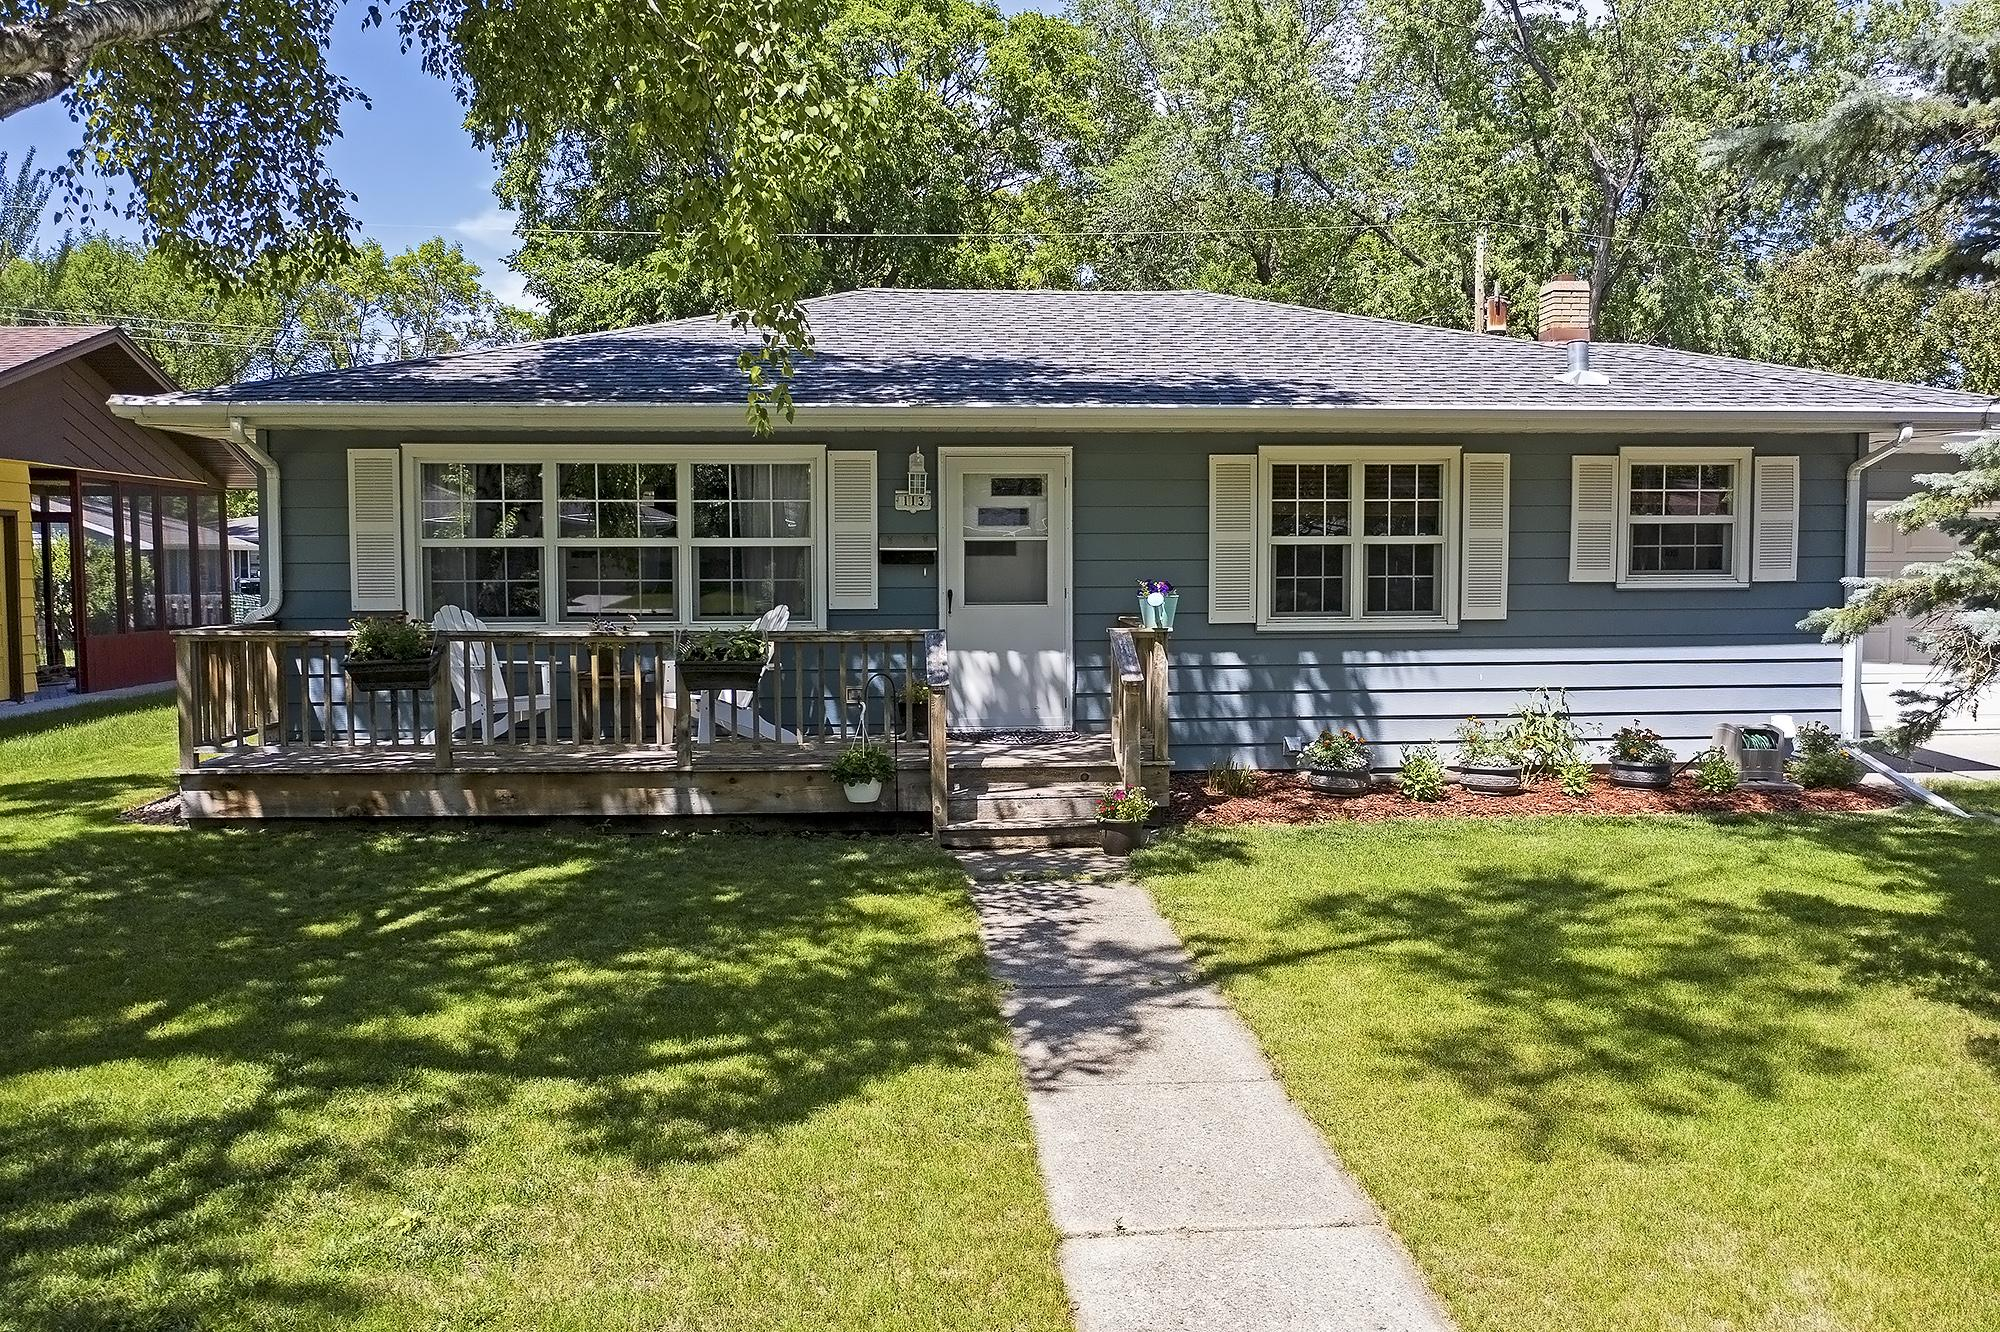 Property Image for 113 23 Ave N